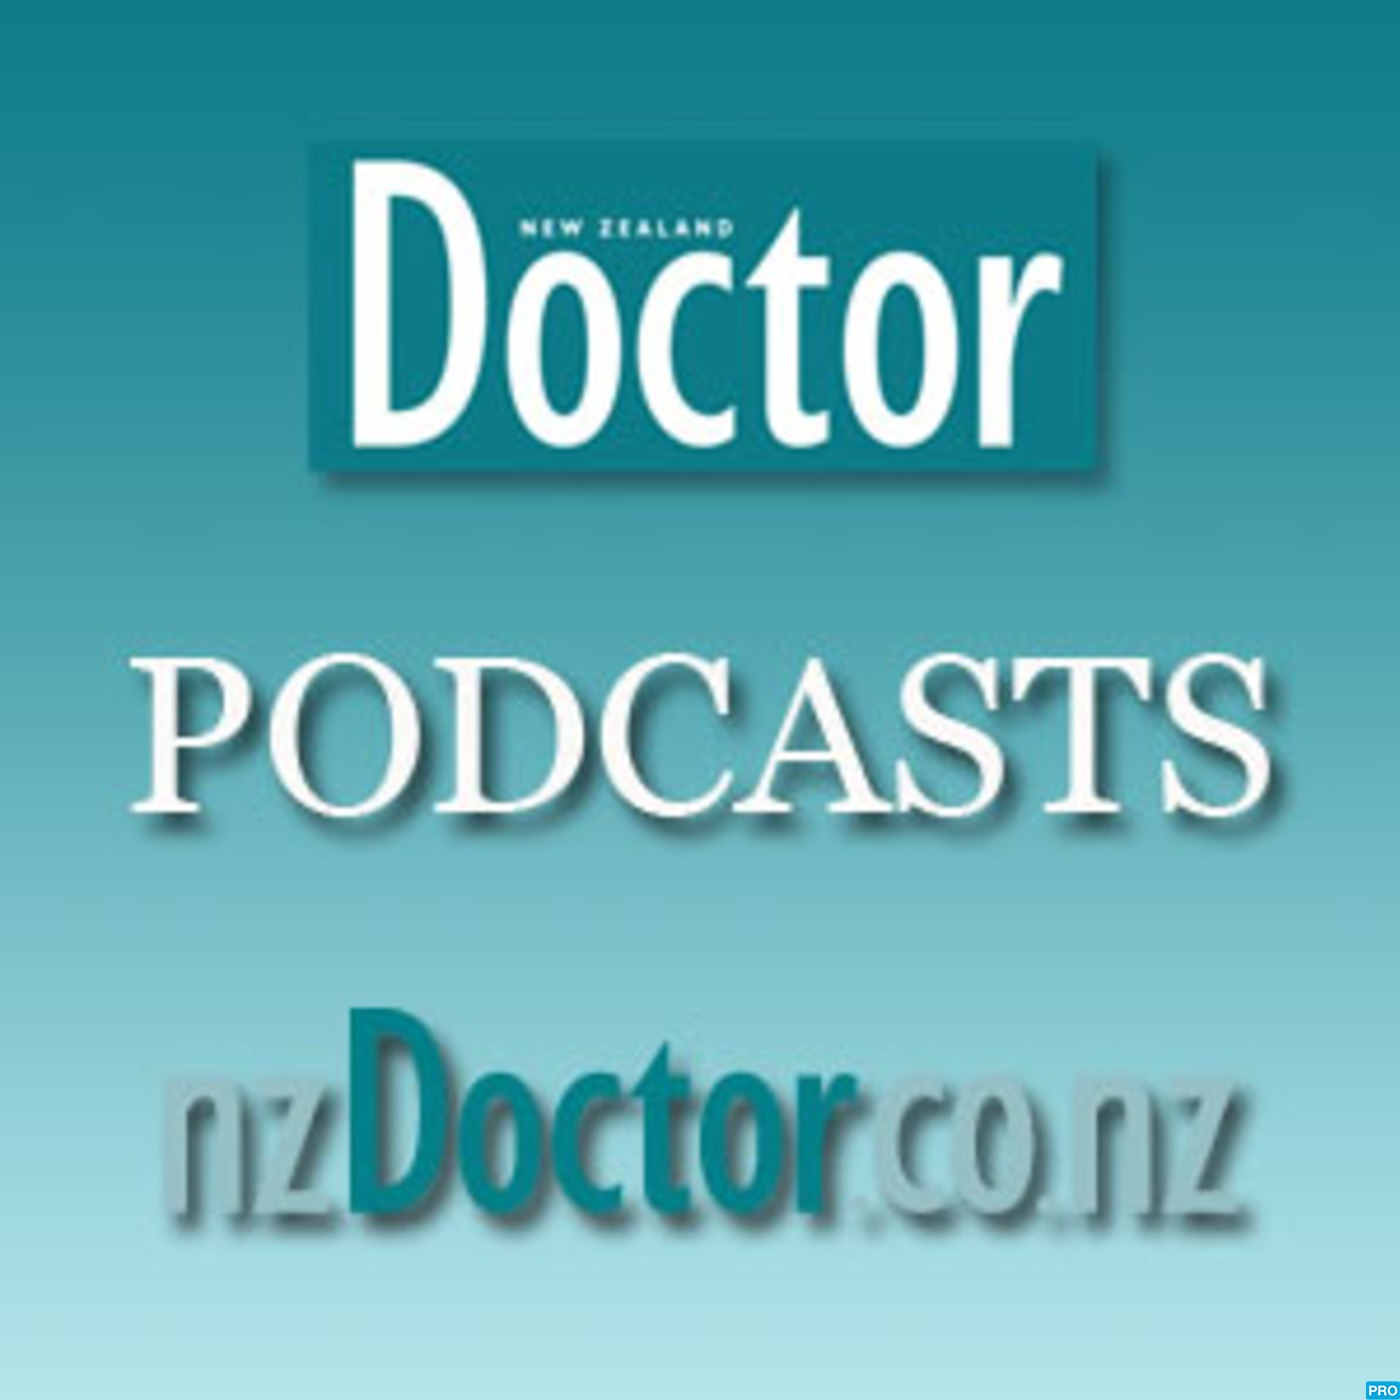 New Zealand Doctor Podcast